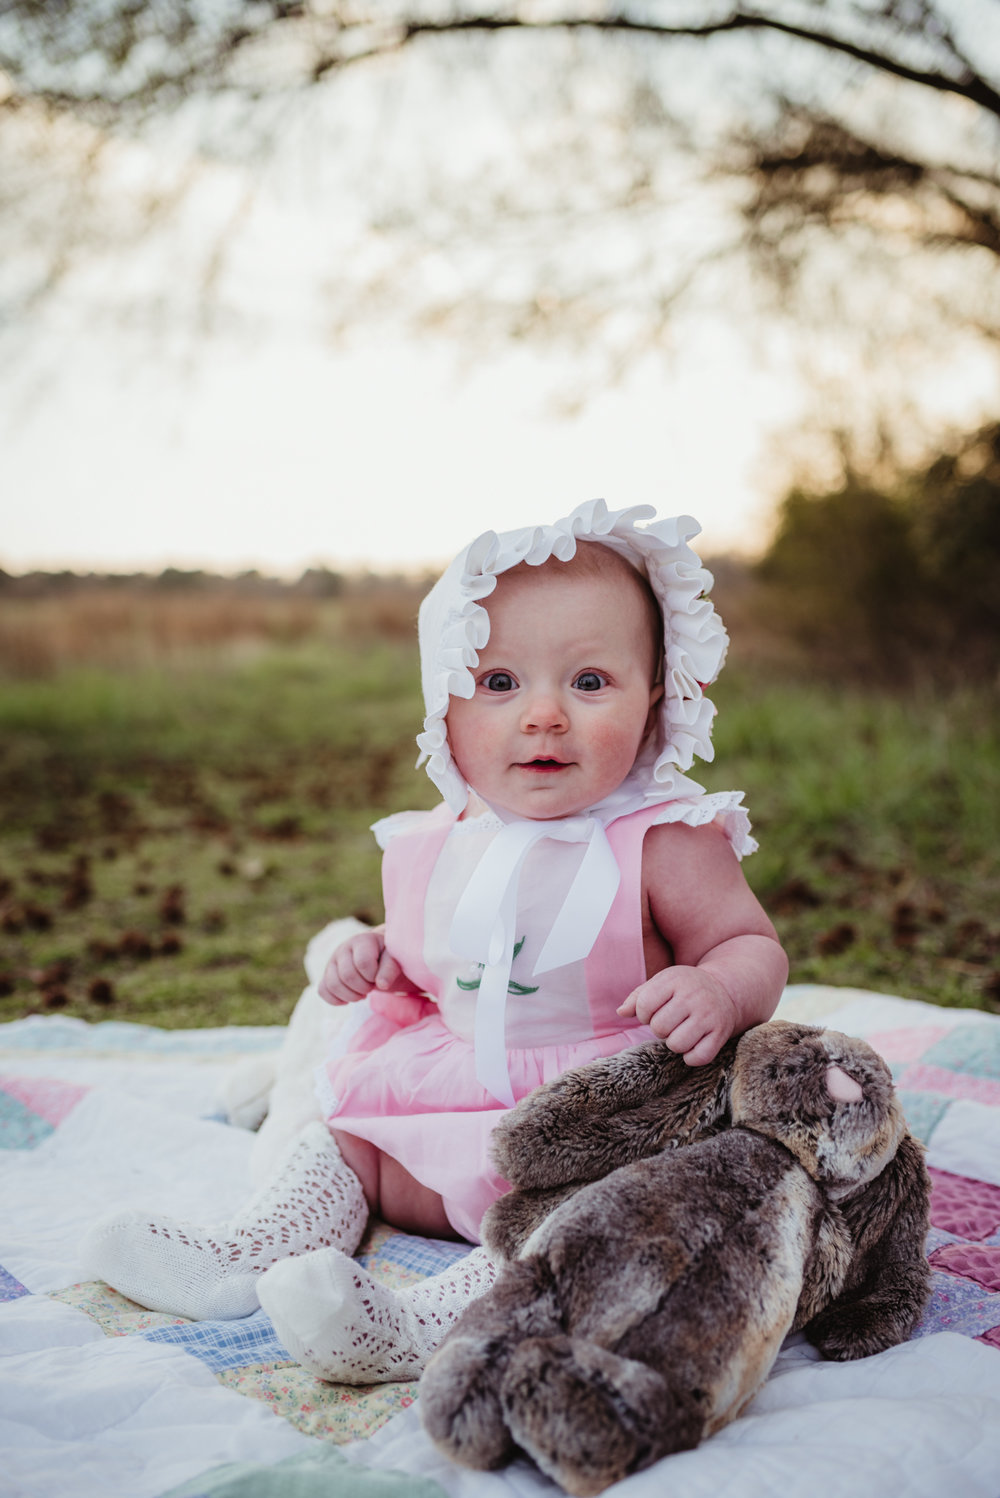 The baby poses on a family blanket with her Easter bonnet and stuffed animals at sunset during their family photos with Rose Trail Images at Horseshoe Farm Park in Wake Forest, NC.